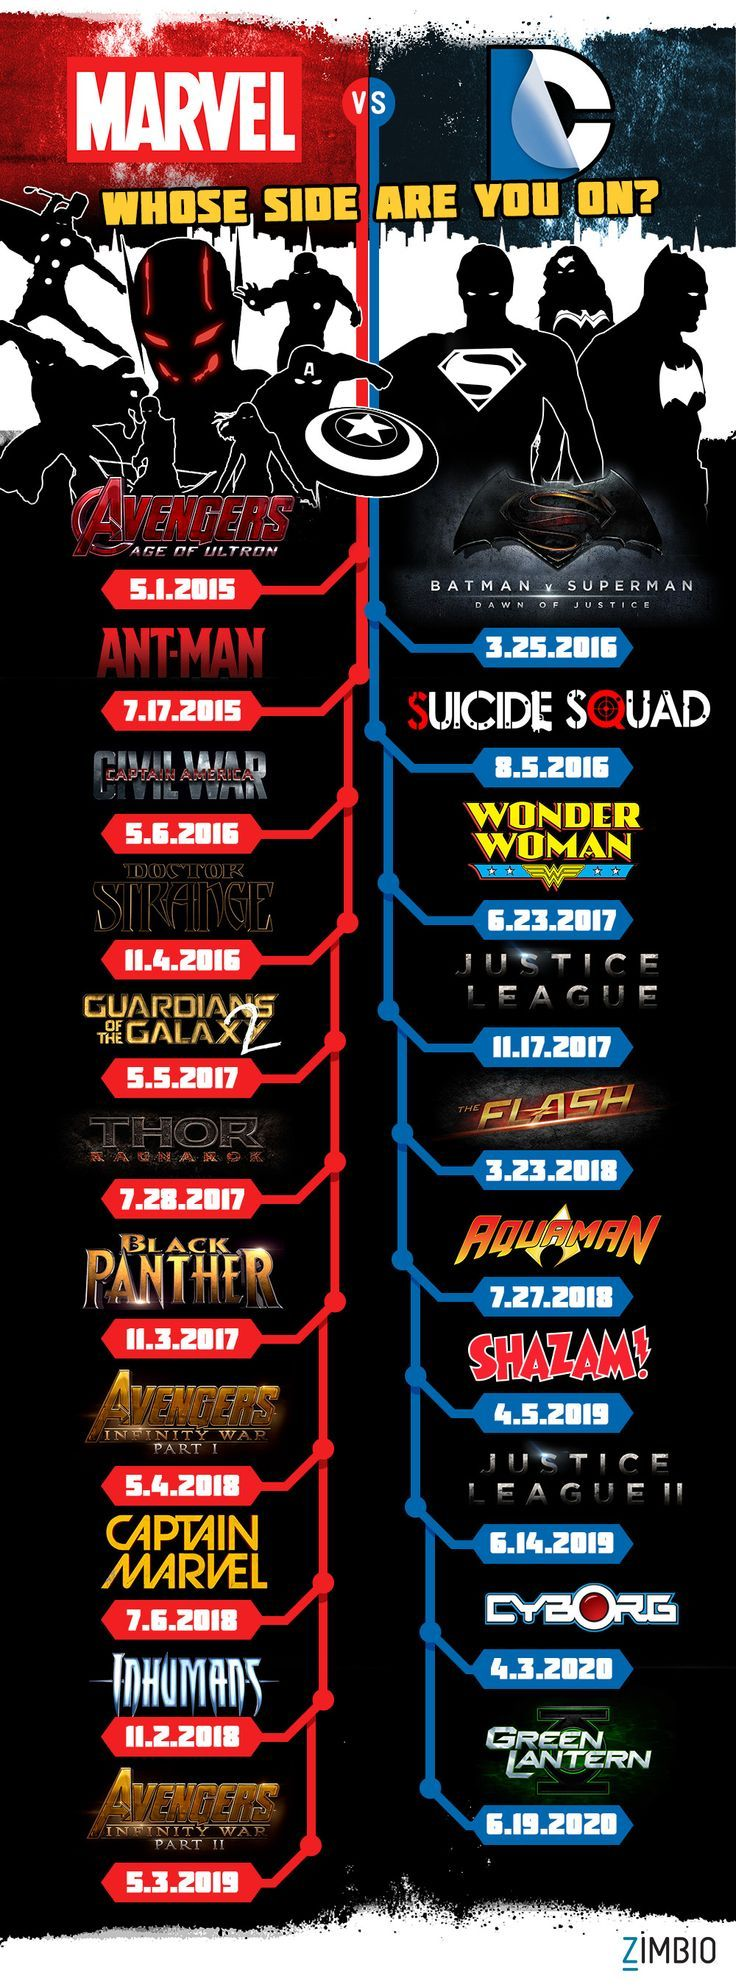 Marvel vs DC...which side are you on? (Every Marvel & DC movie up till 2020)